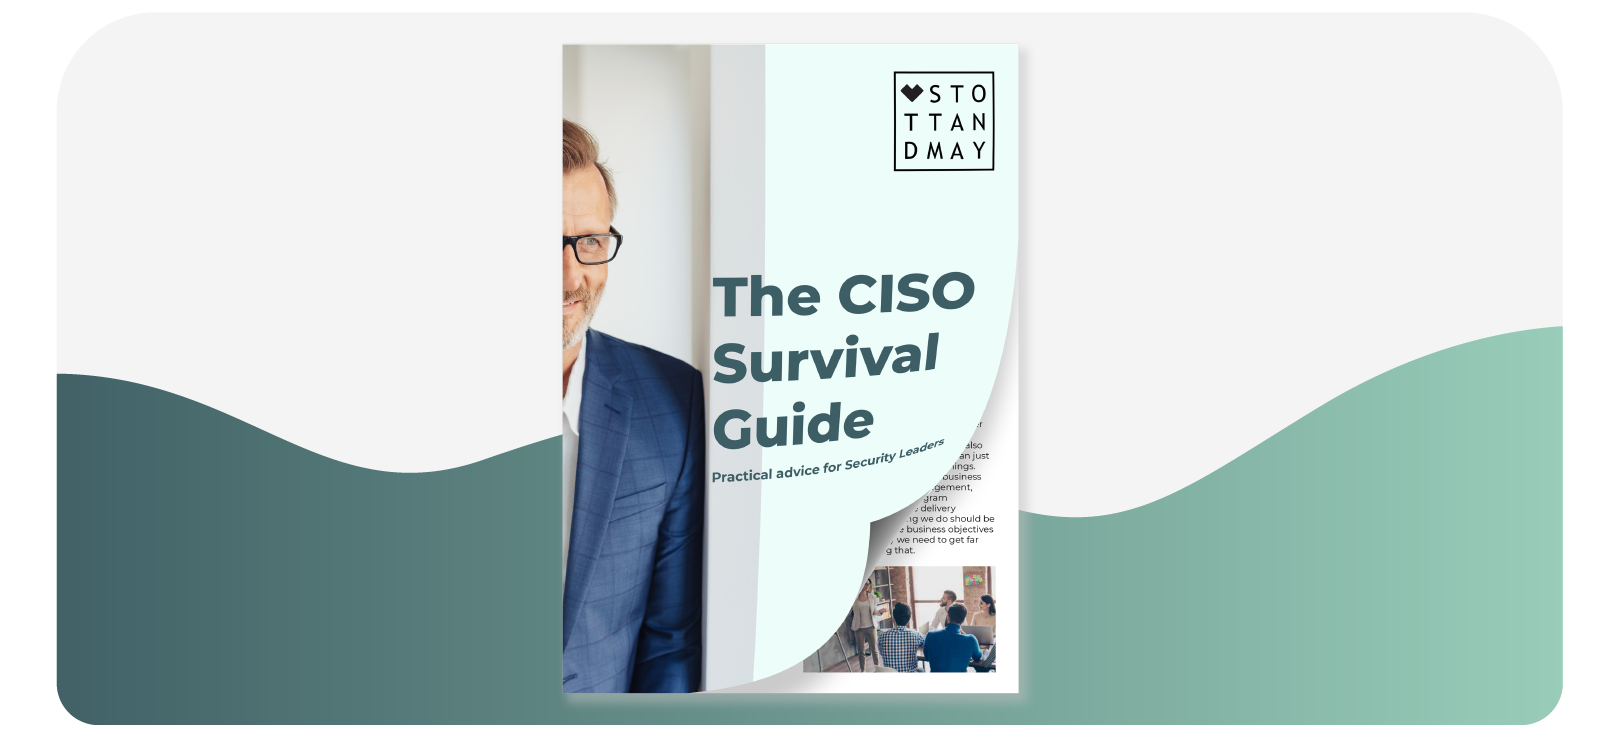 Stott and May CISO Survival Guide